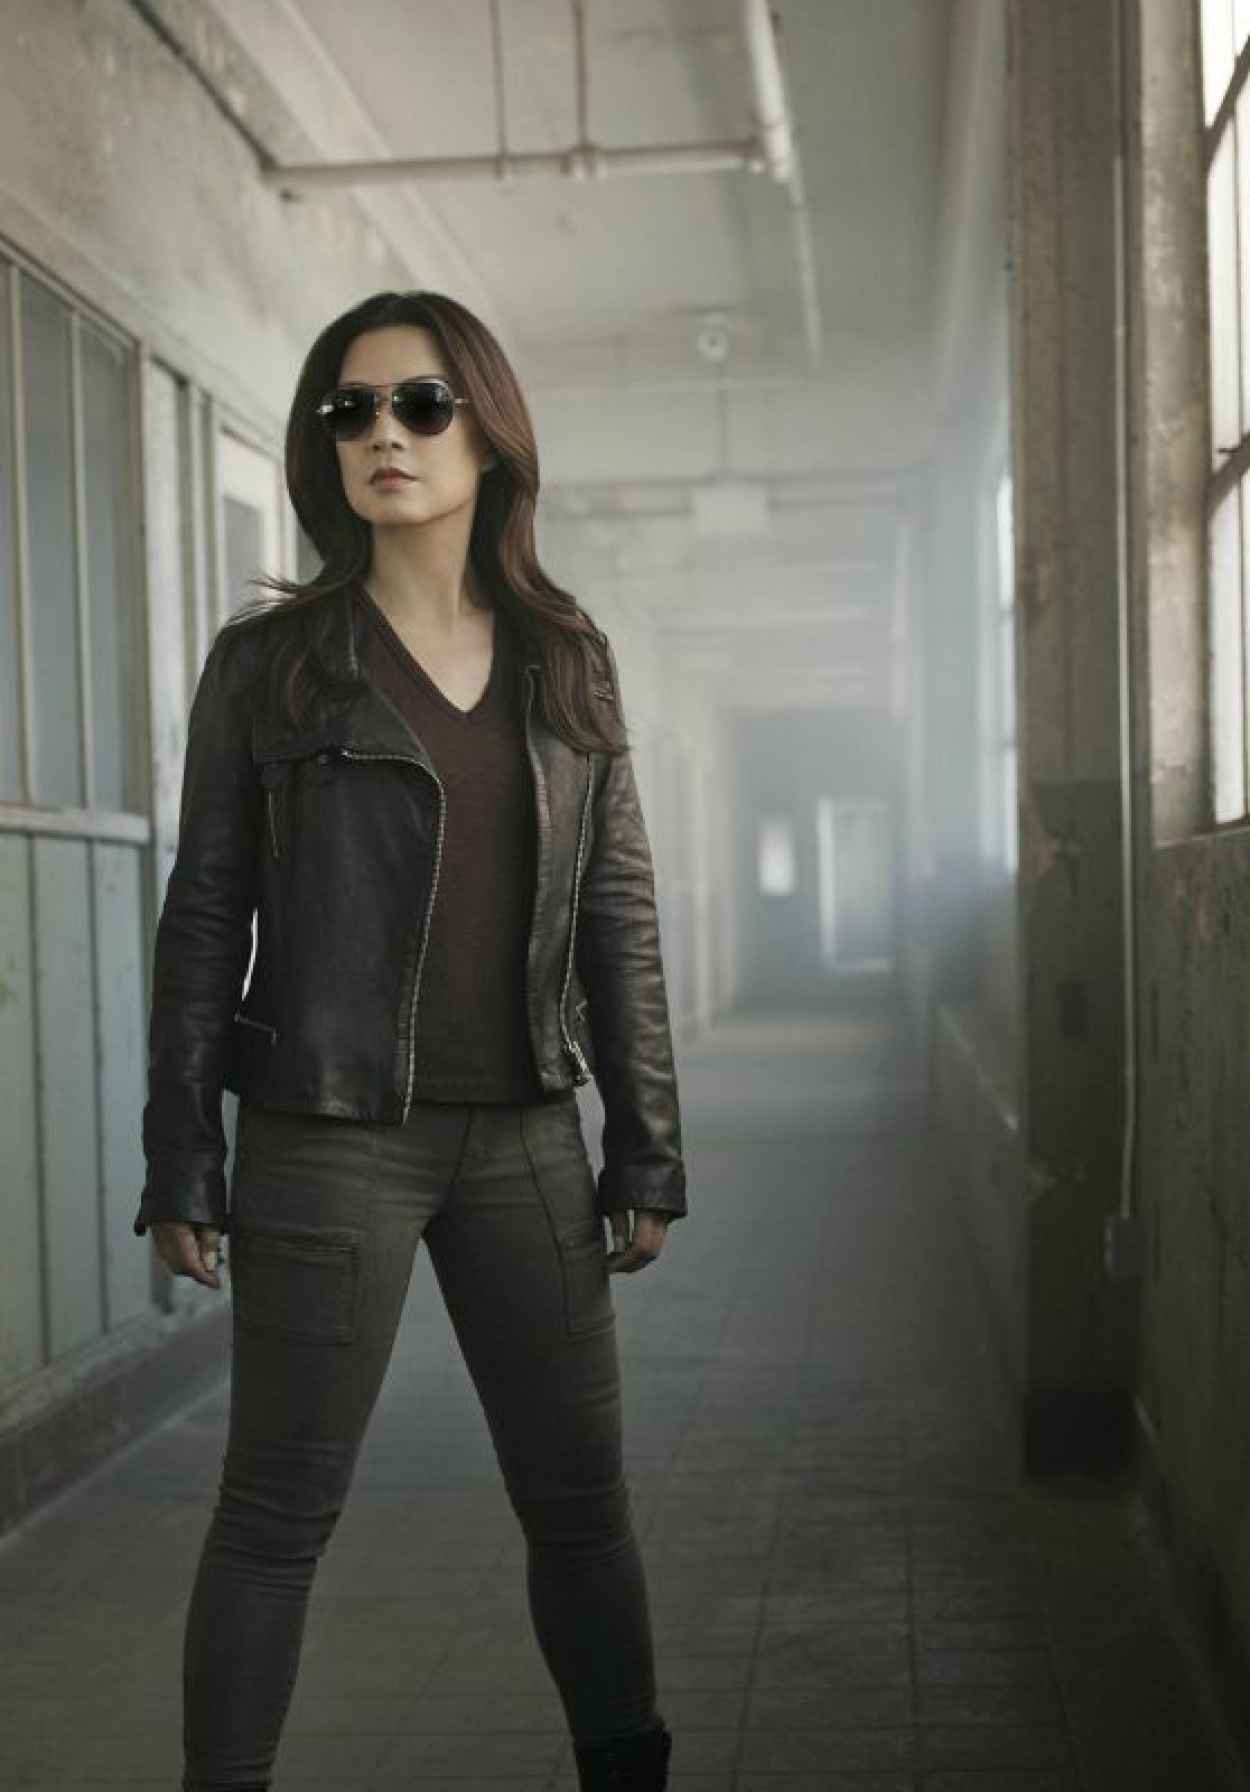 Ming-Na Wen - Agents of SHIELD Season 3 Promos & Stills-1